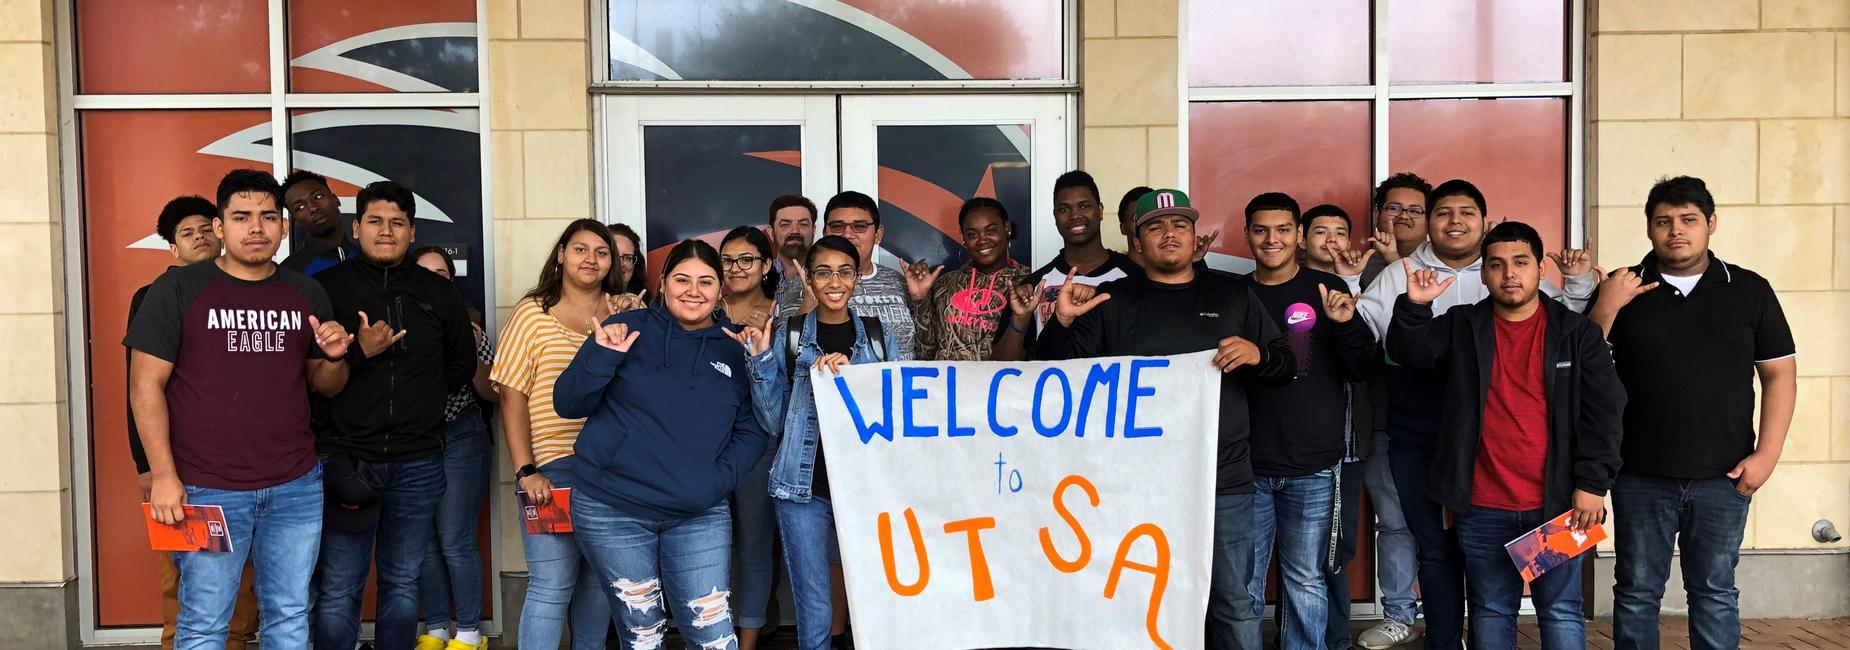 Students at UTSA for college field trip